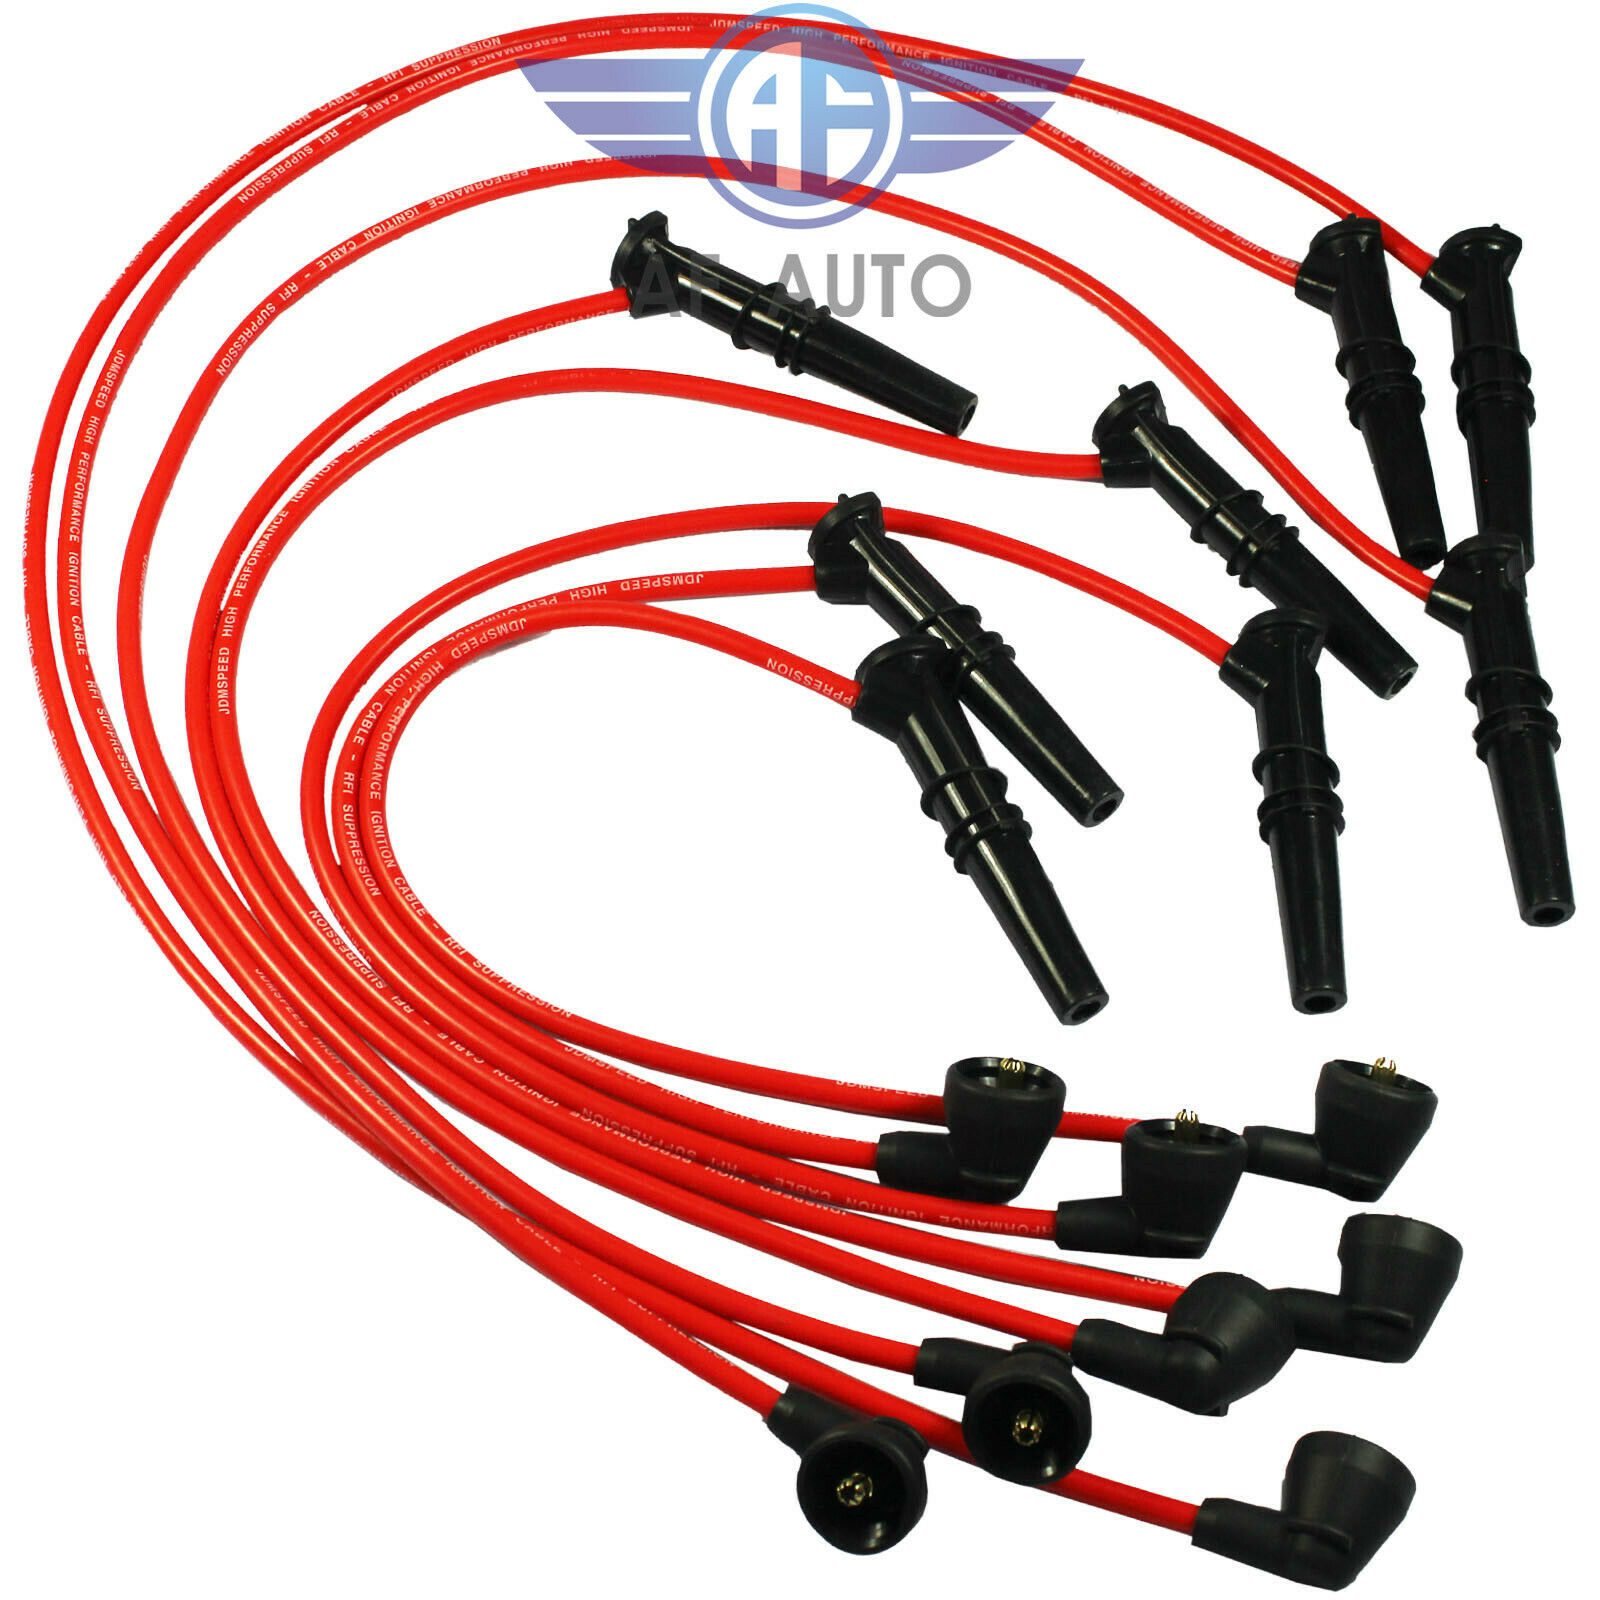 8×Spark Plug Wire  2500-79542 For Ford Lincoln Mercury F-150 F250 V8 4.6L